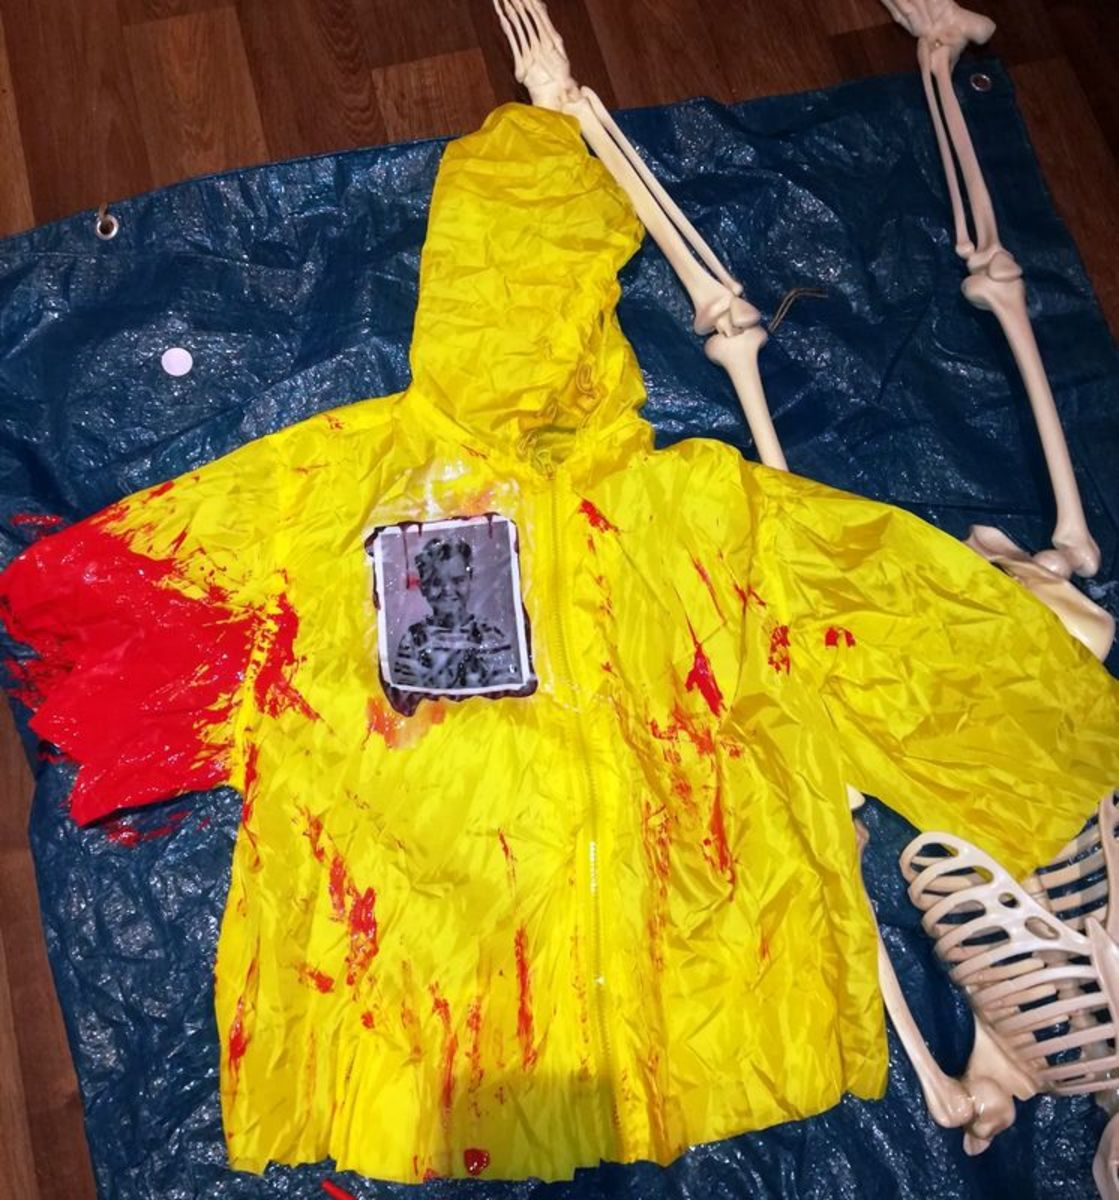 Blood Soaked Raincoat for Halloween